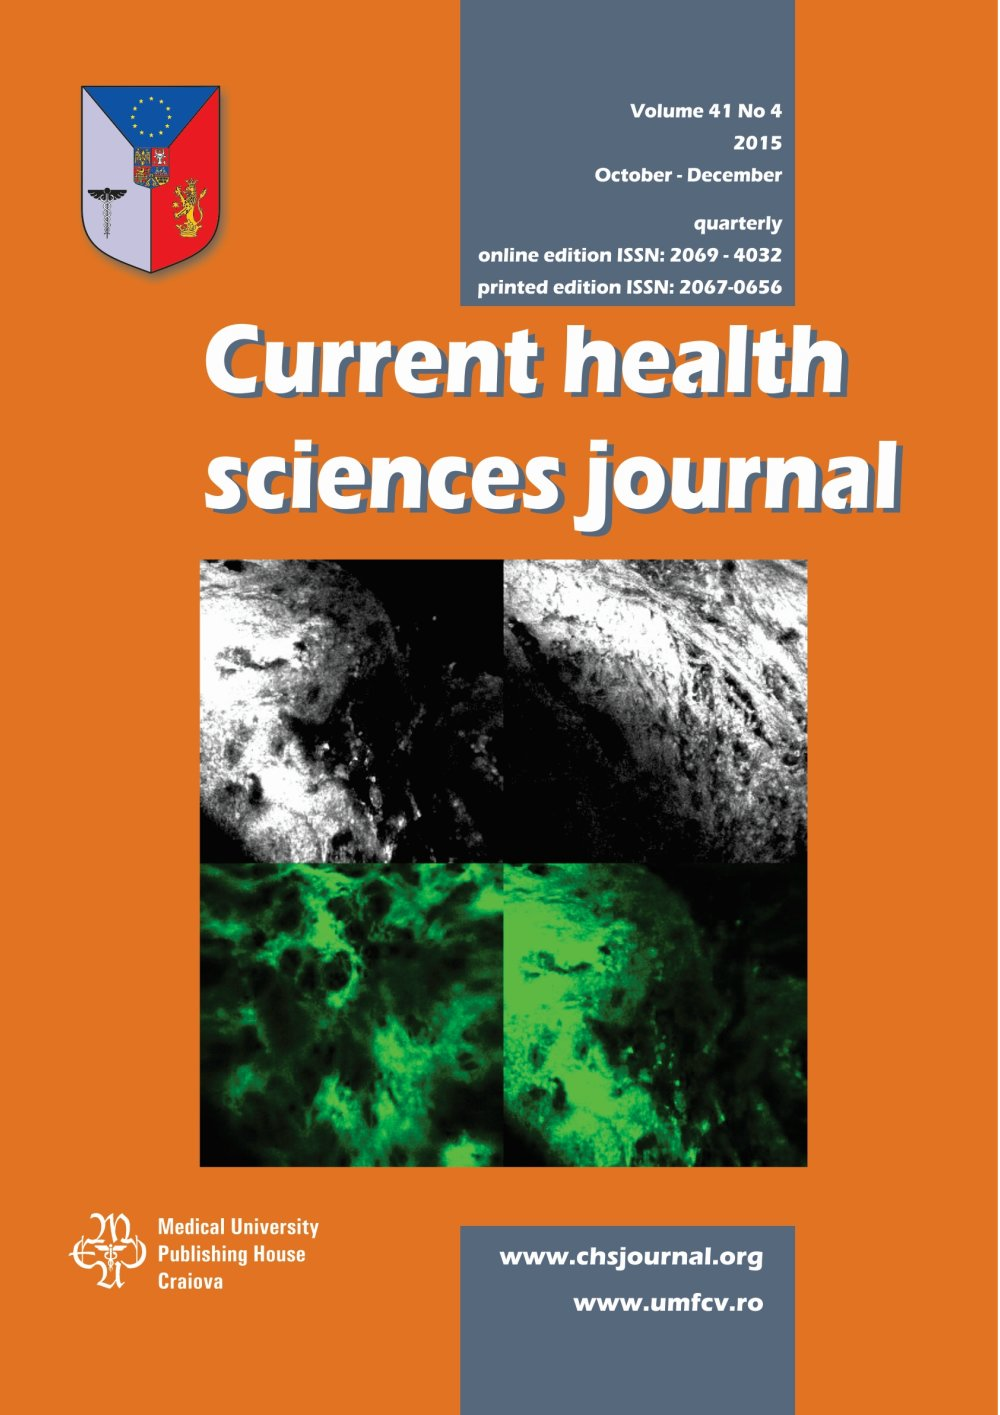 Current Health Sciences Journal, vol. 41 no. 4, 2015